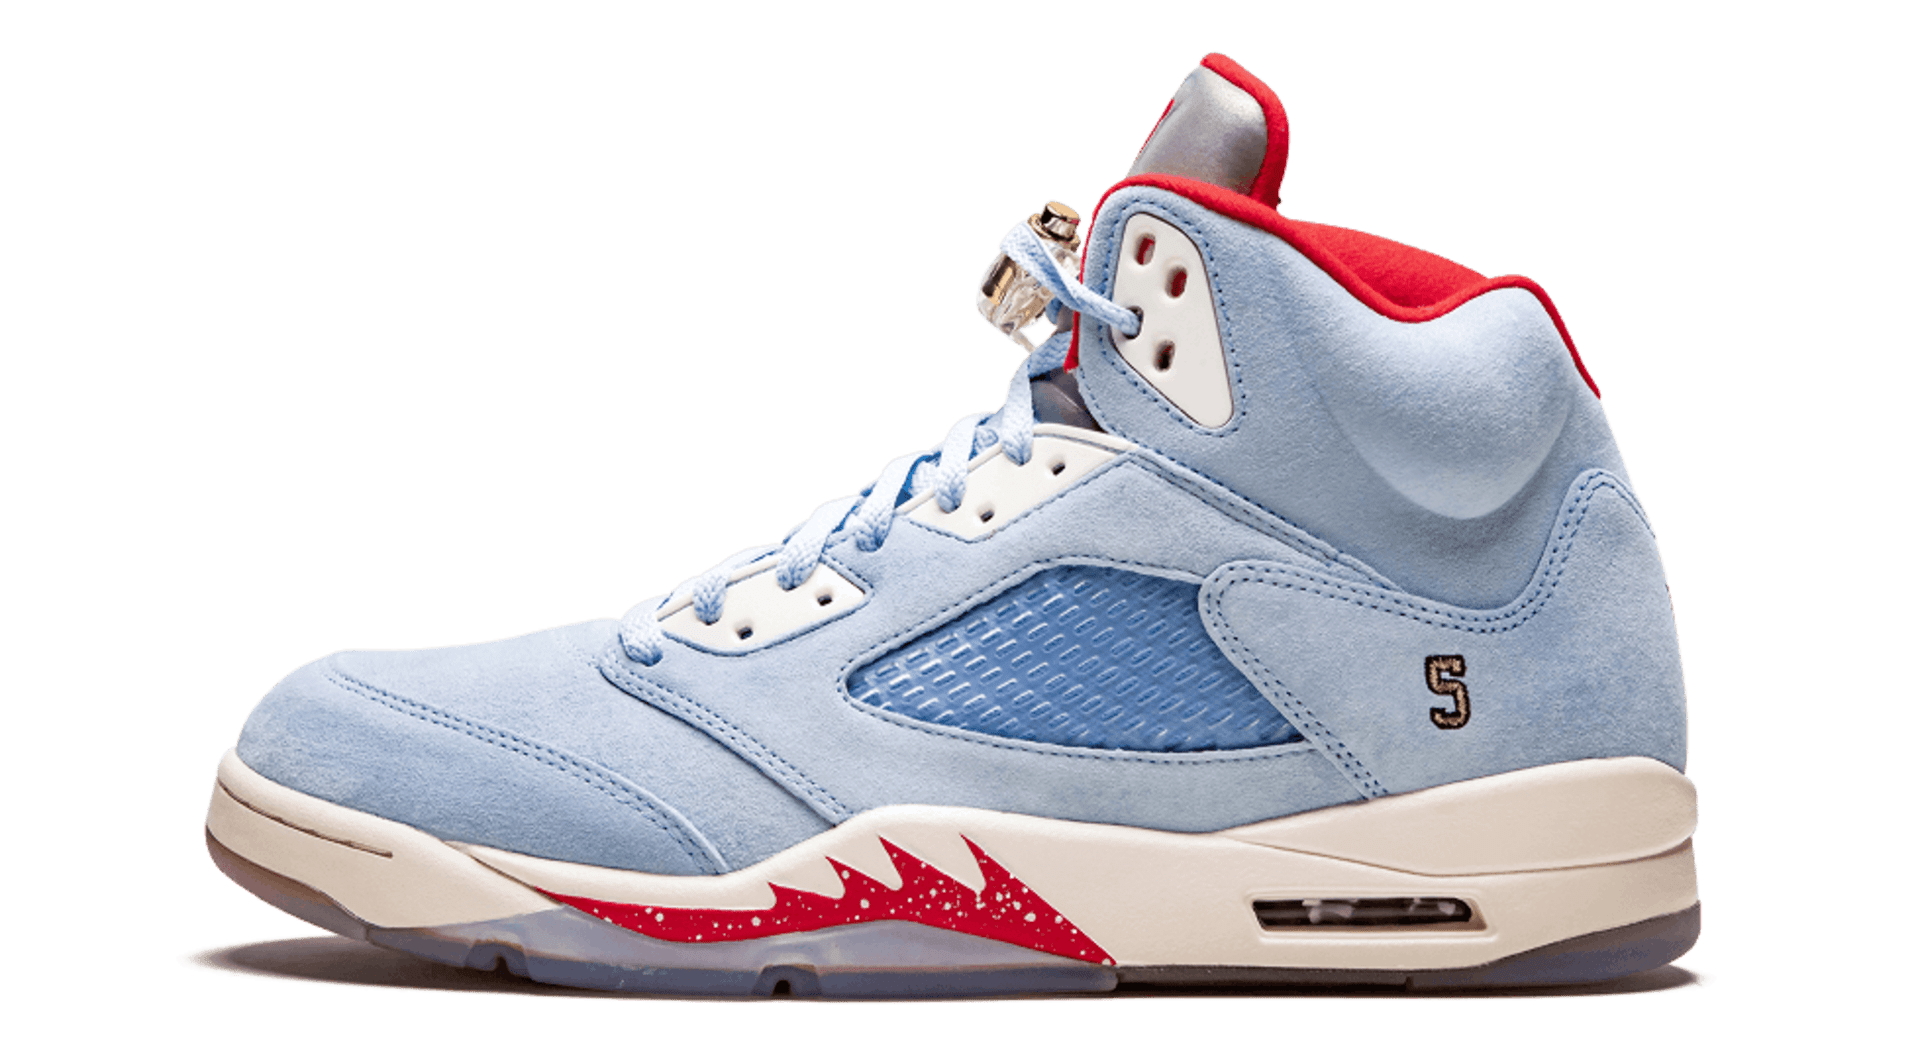 best website 014c8 e7390 Best Air Jordans of 2019 (So Far): Air Jordan Releases of ...